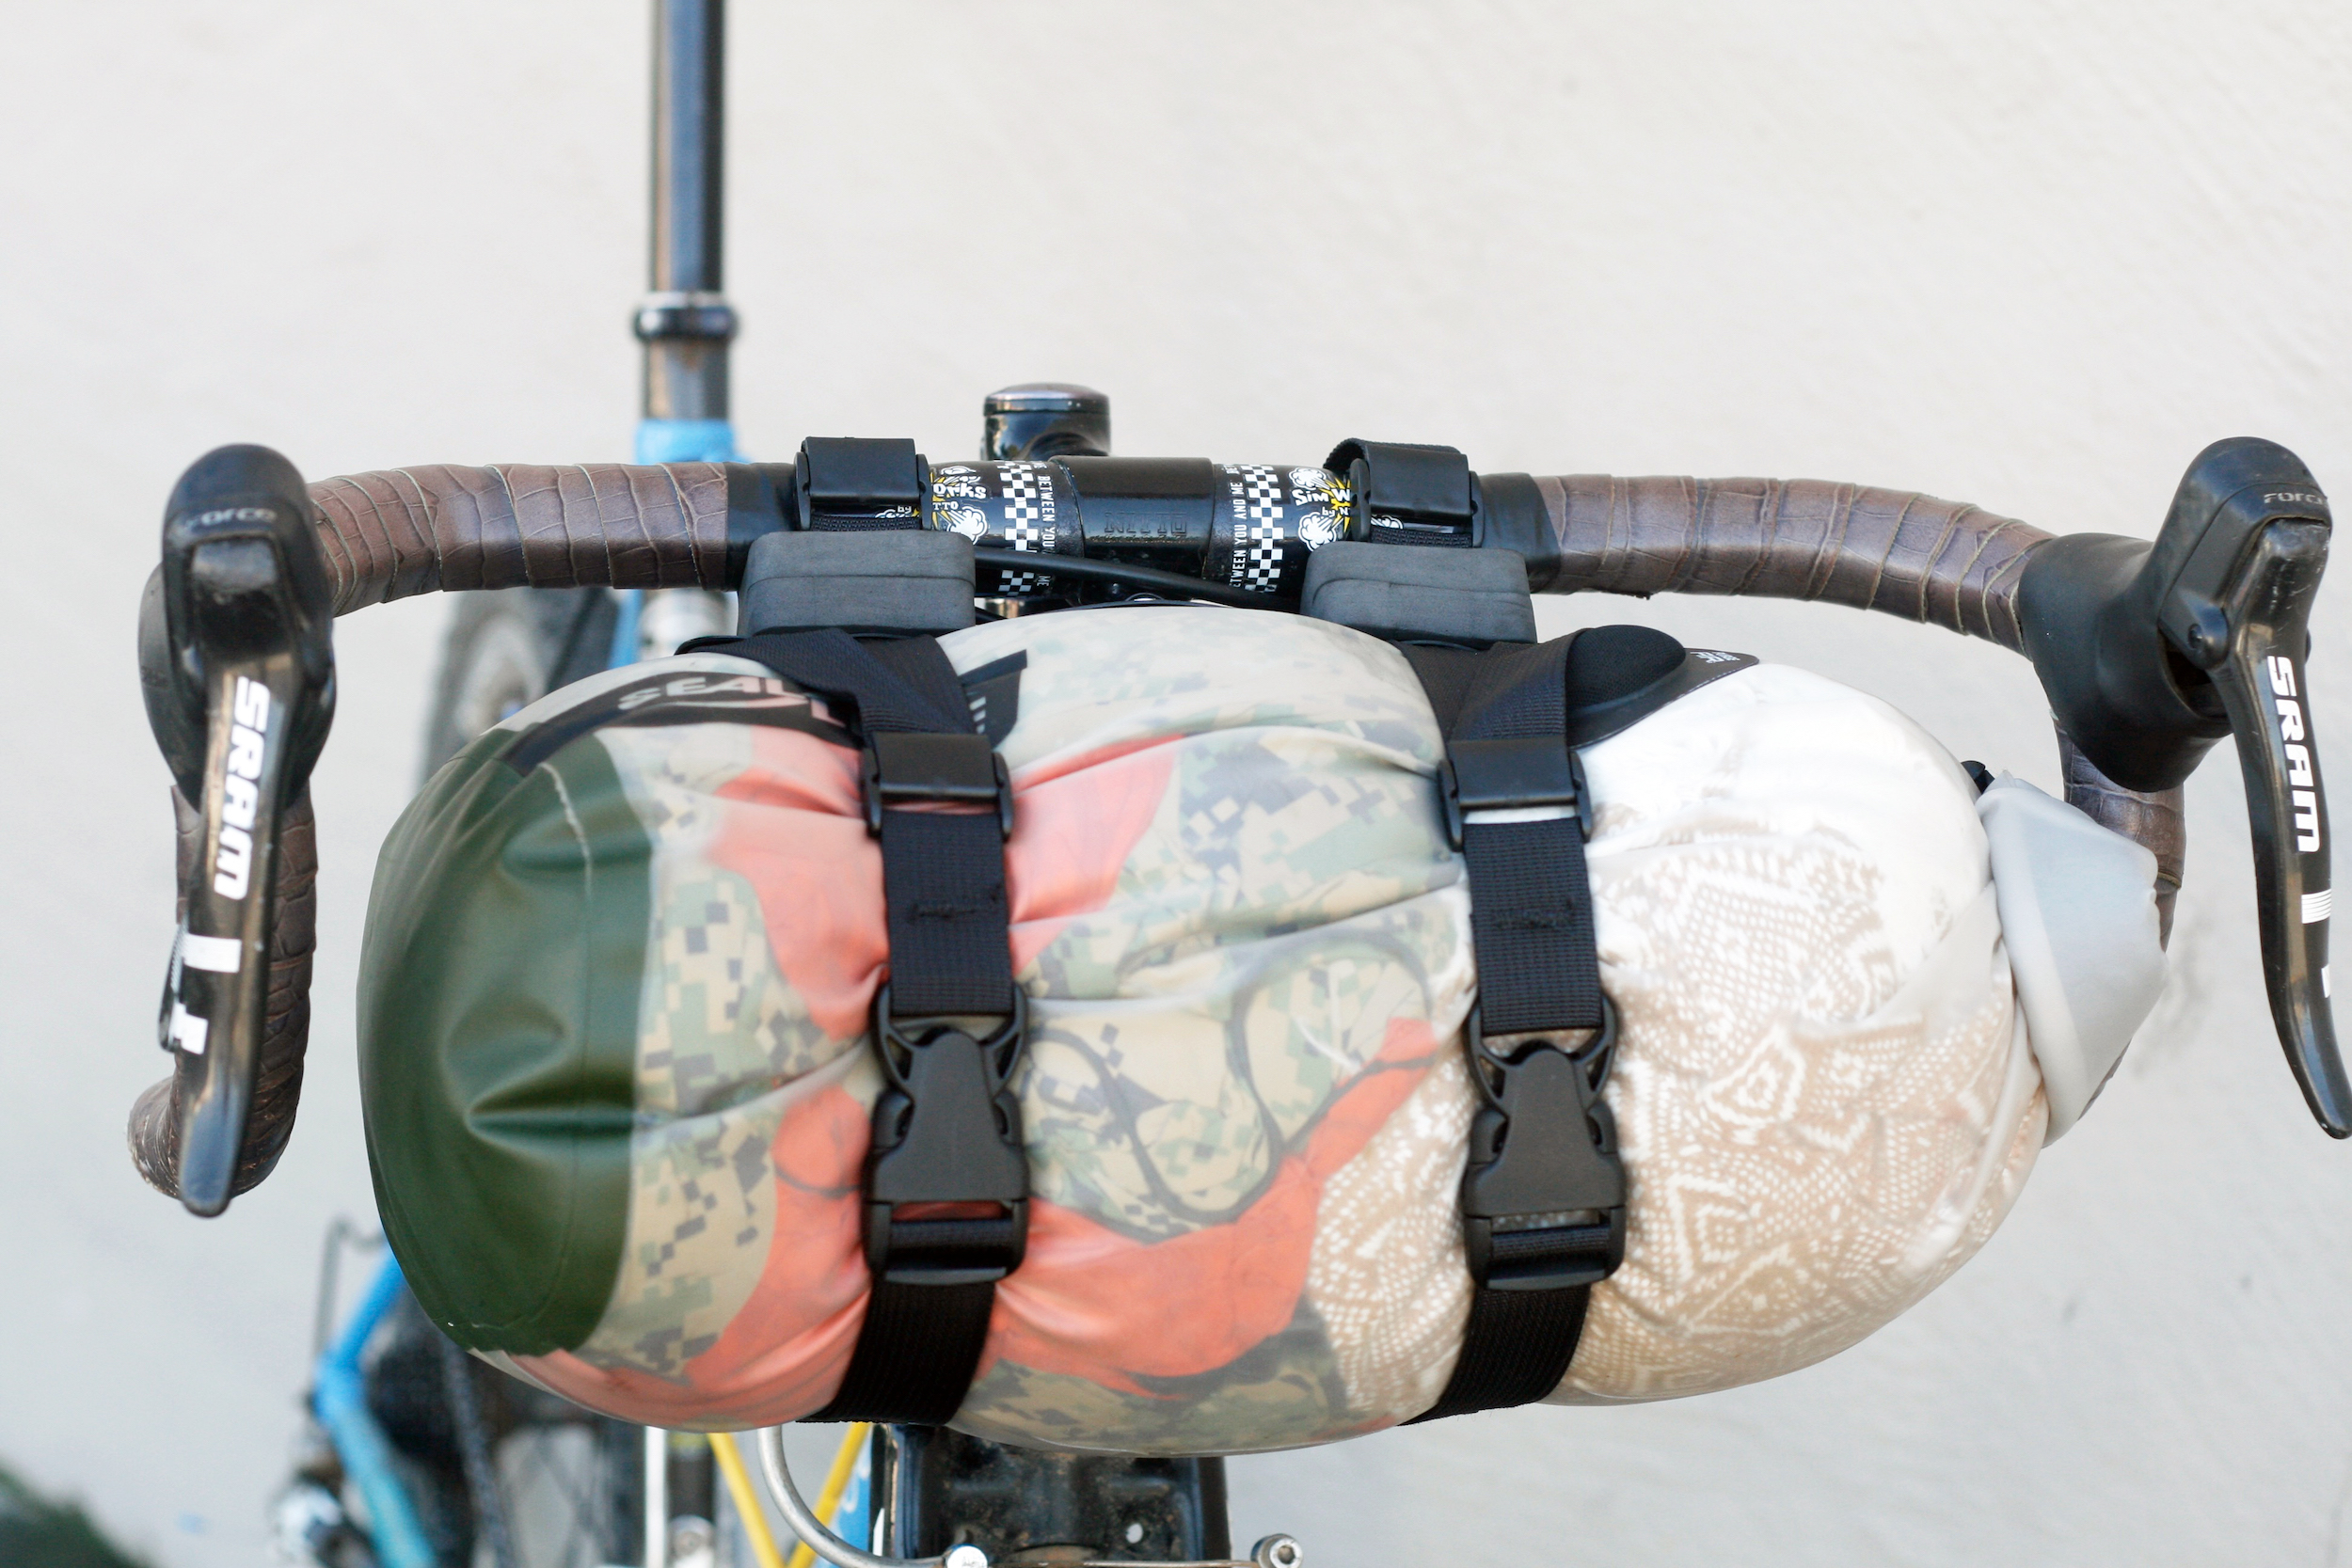 (2) spacers on each handlebar attachment, (3) spacers on lower attachment point, 10L dry bag shown, the handlebar spacers are only used to keep the top handlebar position accessible